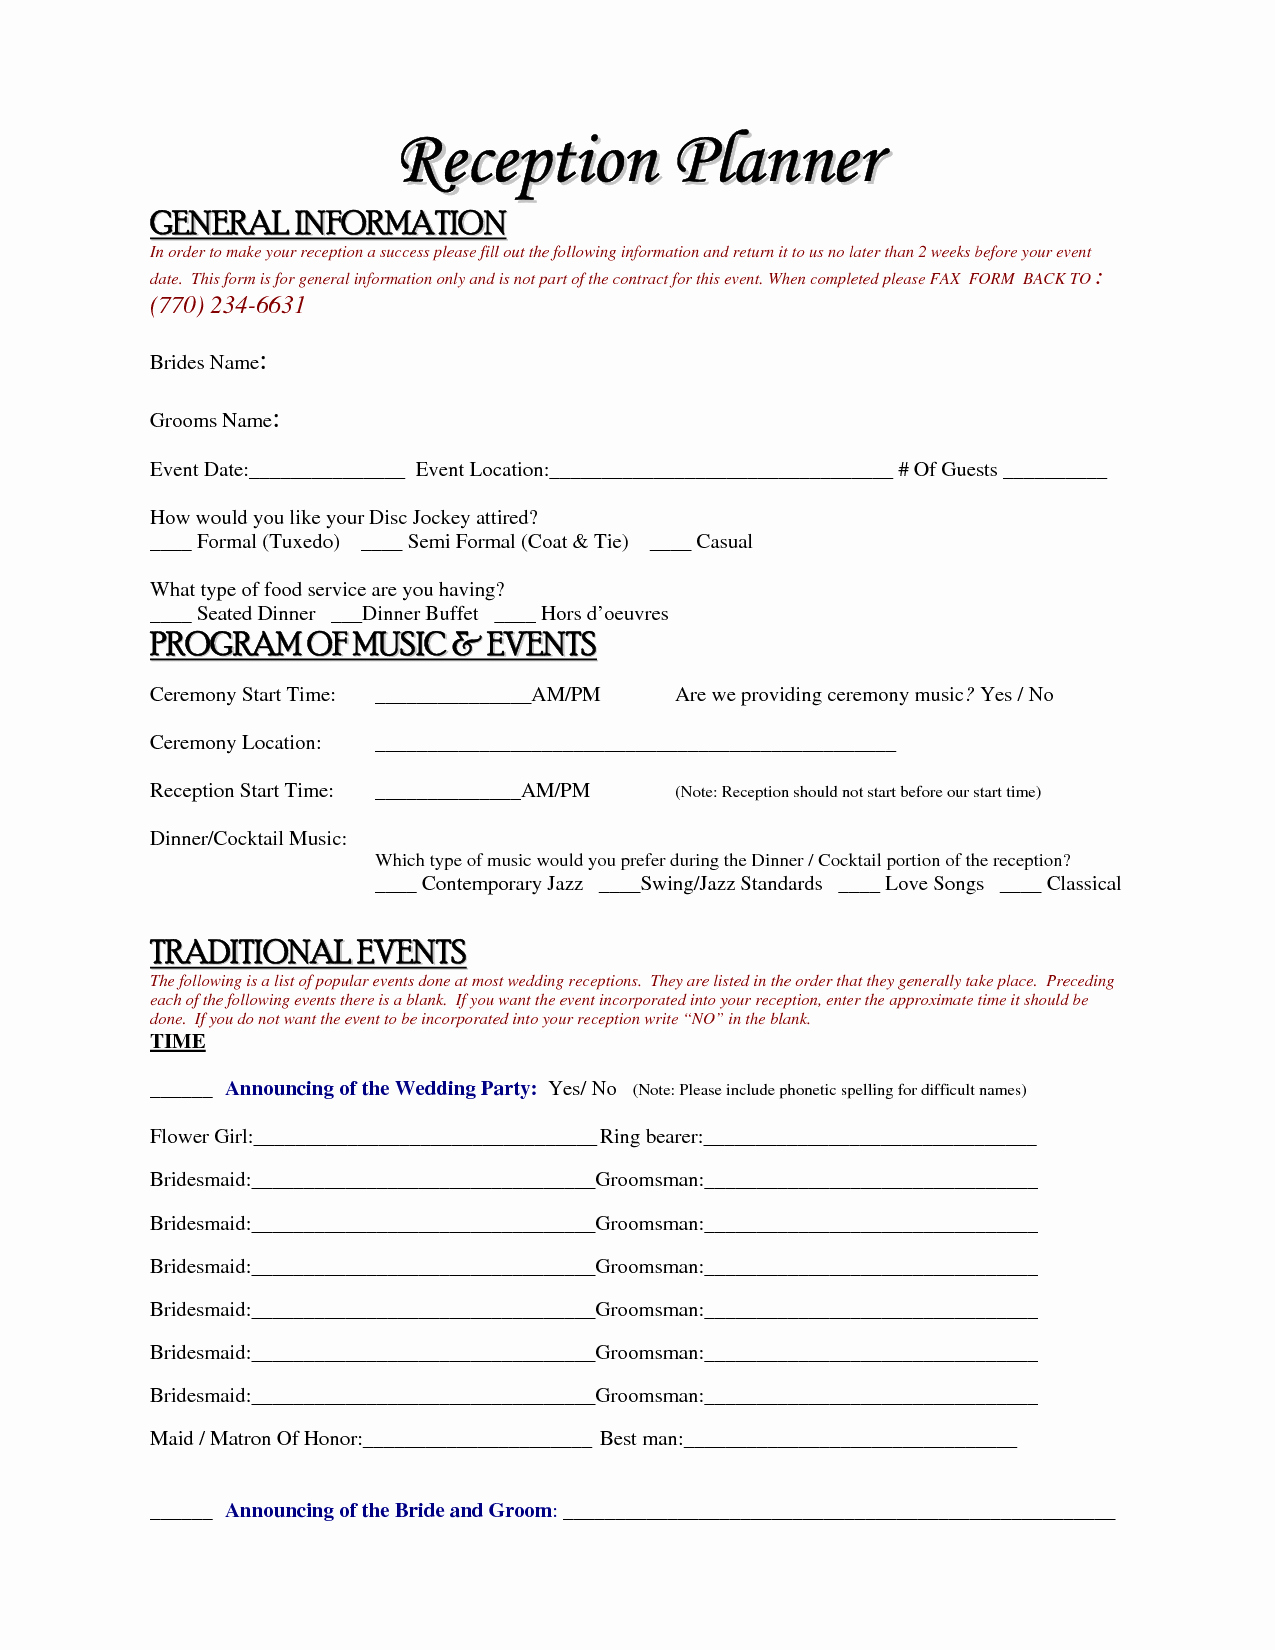 Event Planning Contract Template Elegant Pin by Yesidomariage On La Voiture Des Mariés In 2019